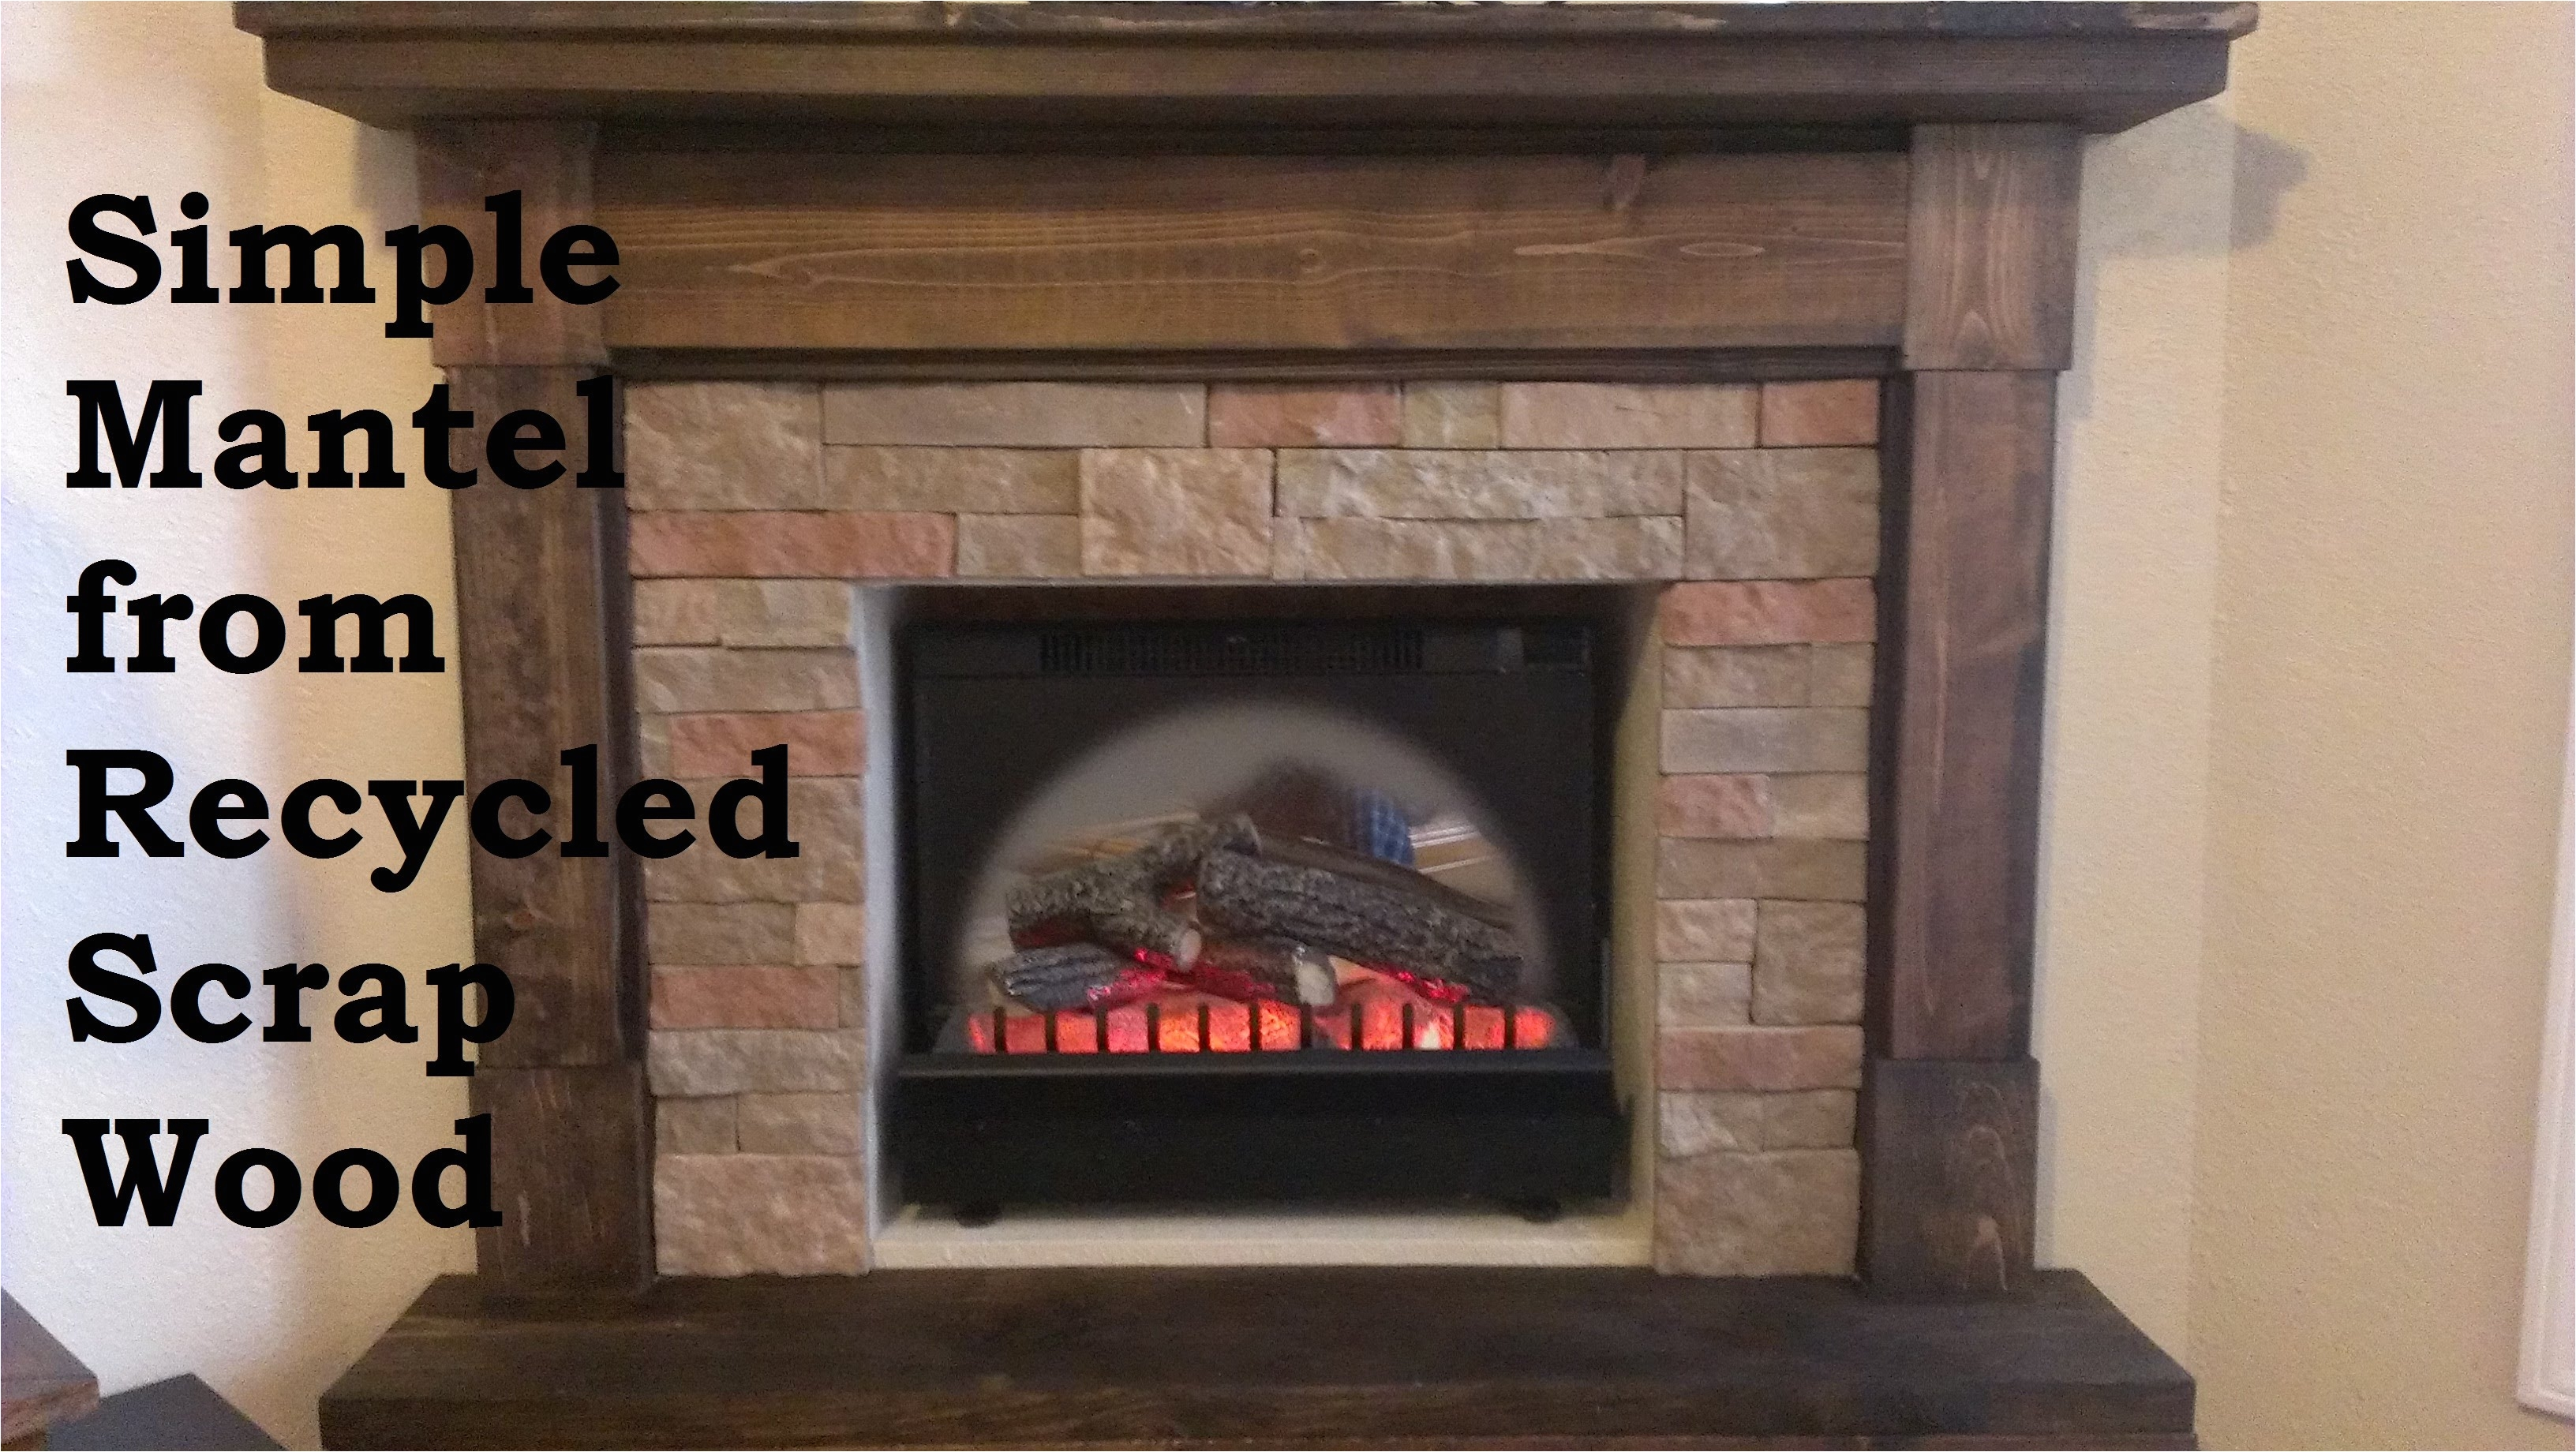 how to build a fireplace mantel from scratch building a fireplace mantel from scrap wood youtube of how to build a fireplace mantel from scratch